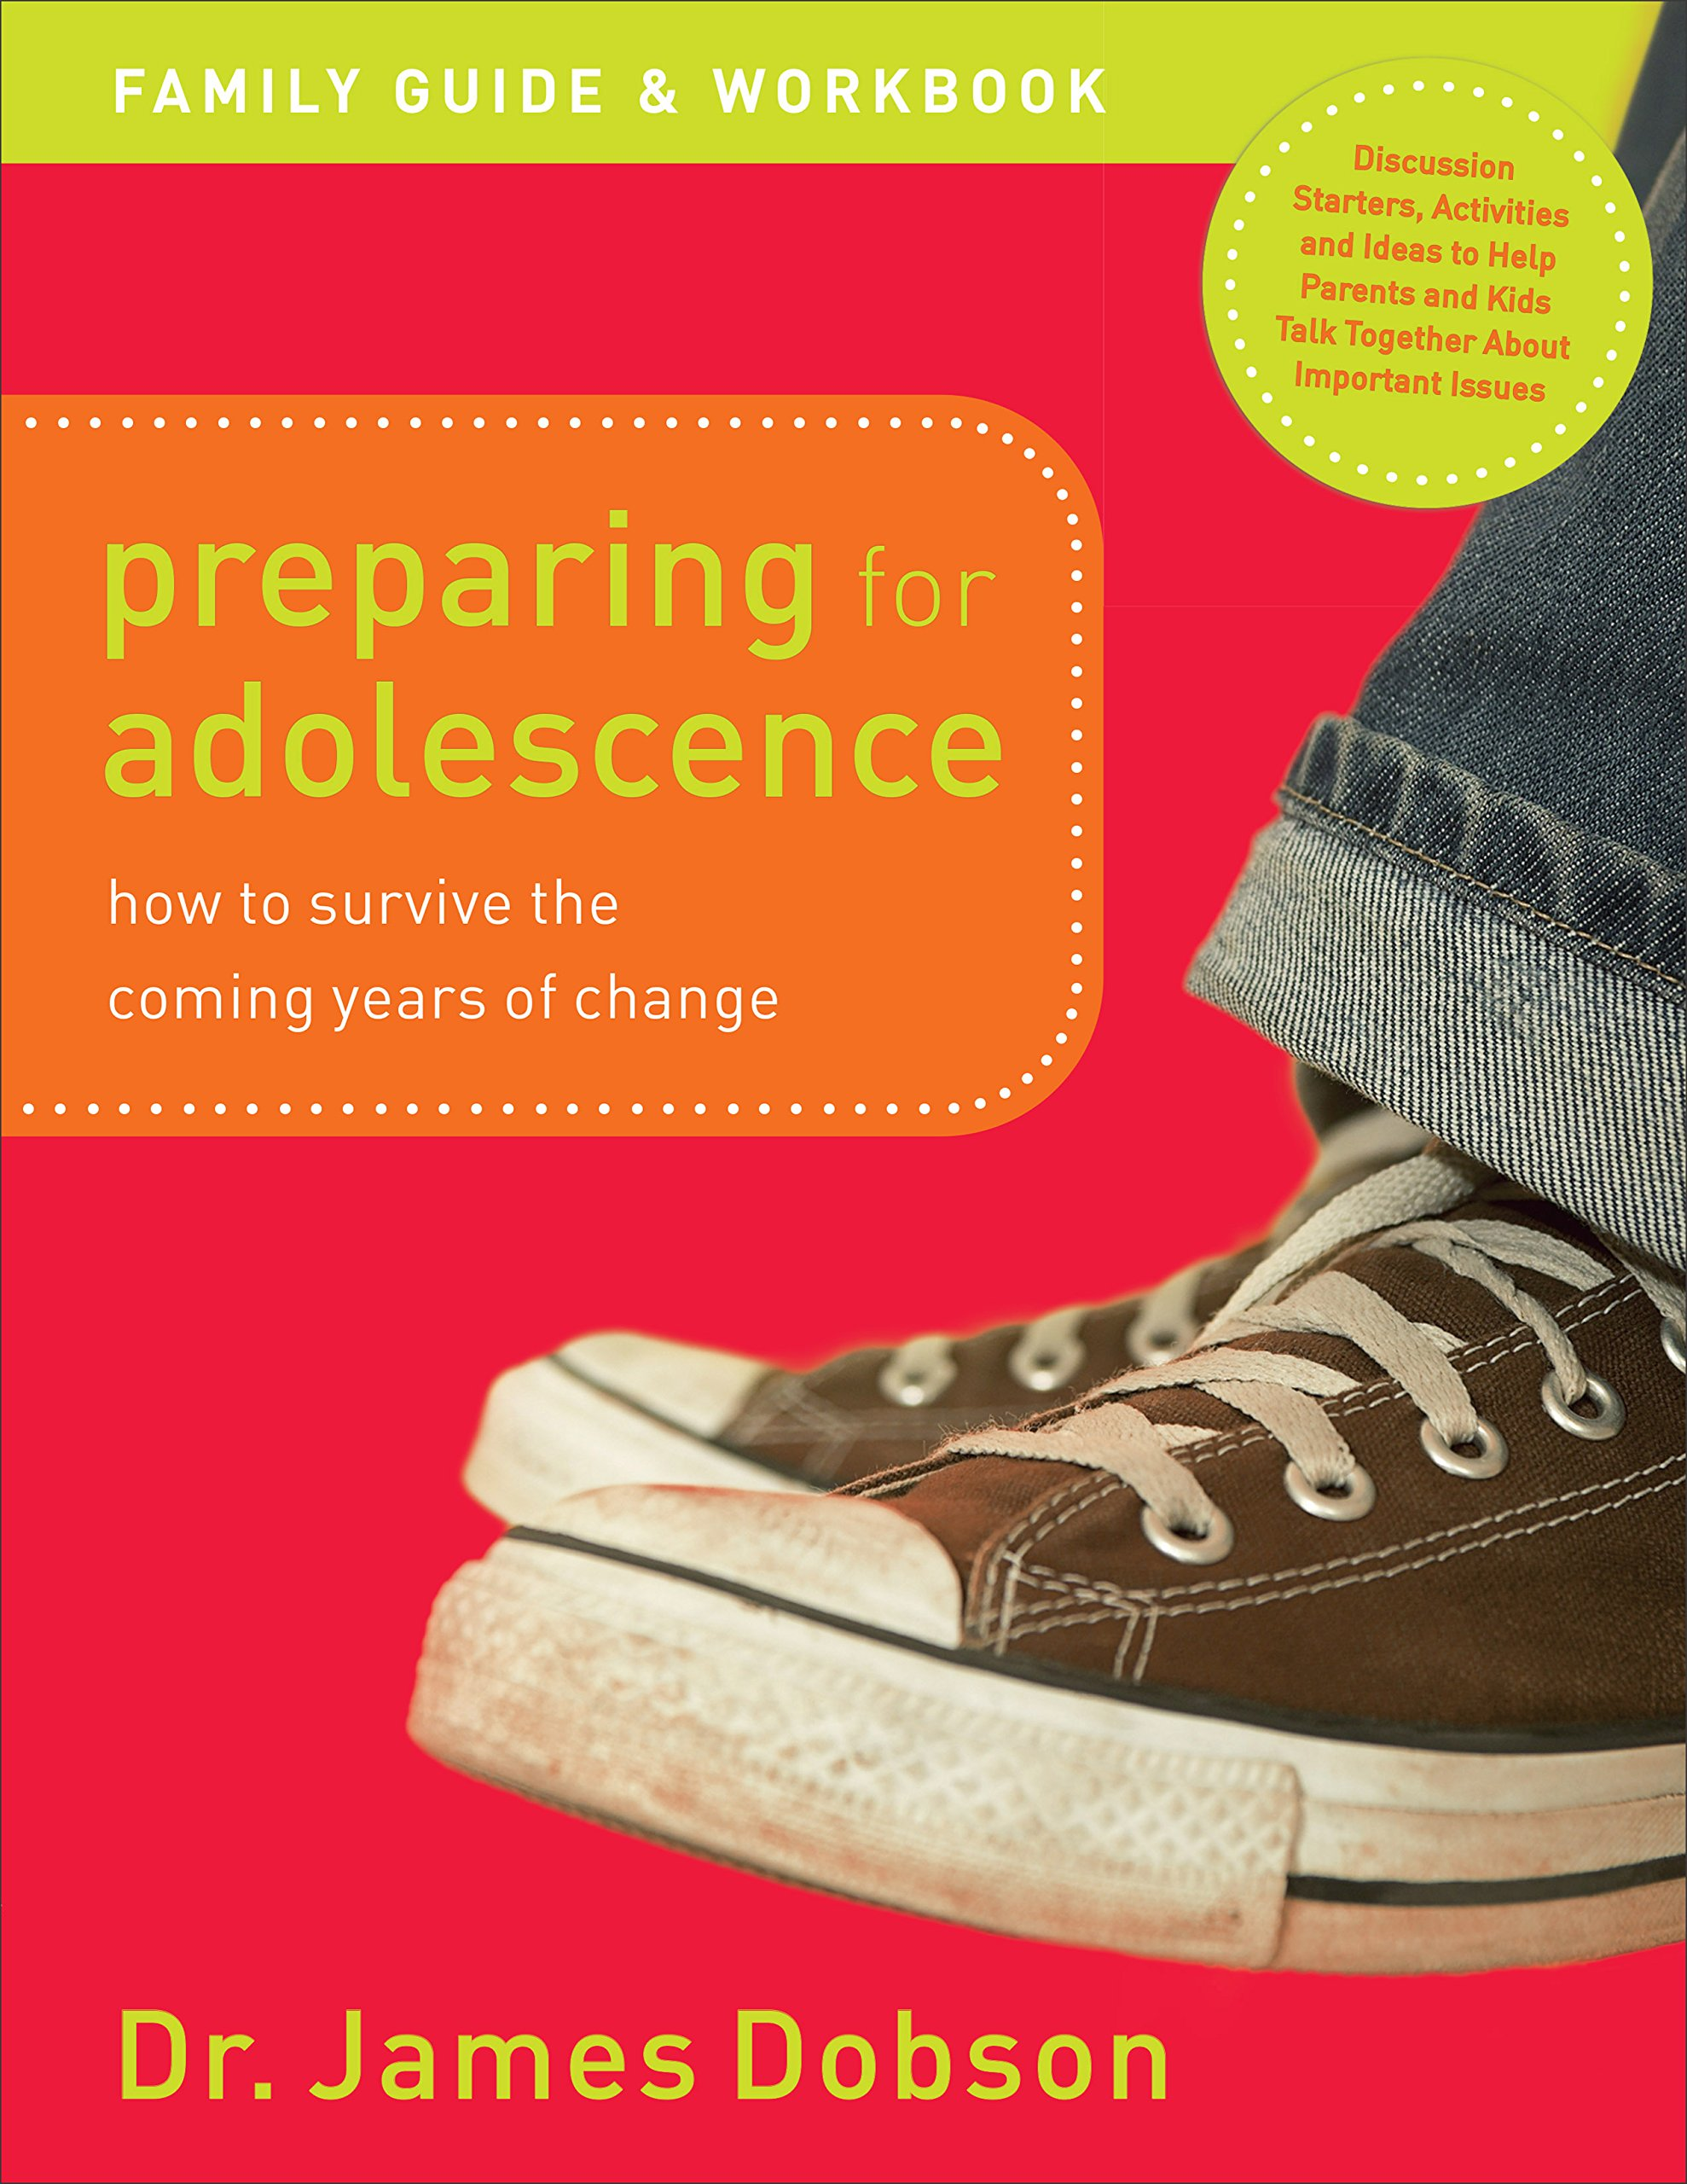 Night lights james dobson - Preparing For Adolescence Family Guide And Workbook How To Survive The Coming Years Of Change Dr James Dobson 9780800726546 Amazon Com Books